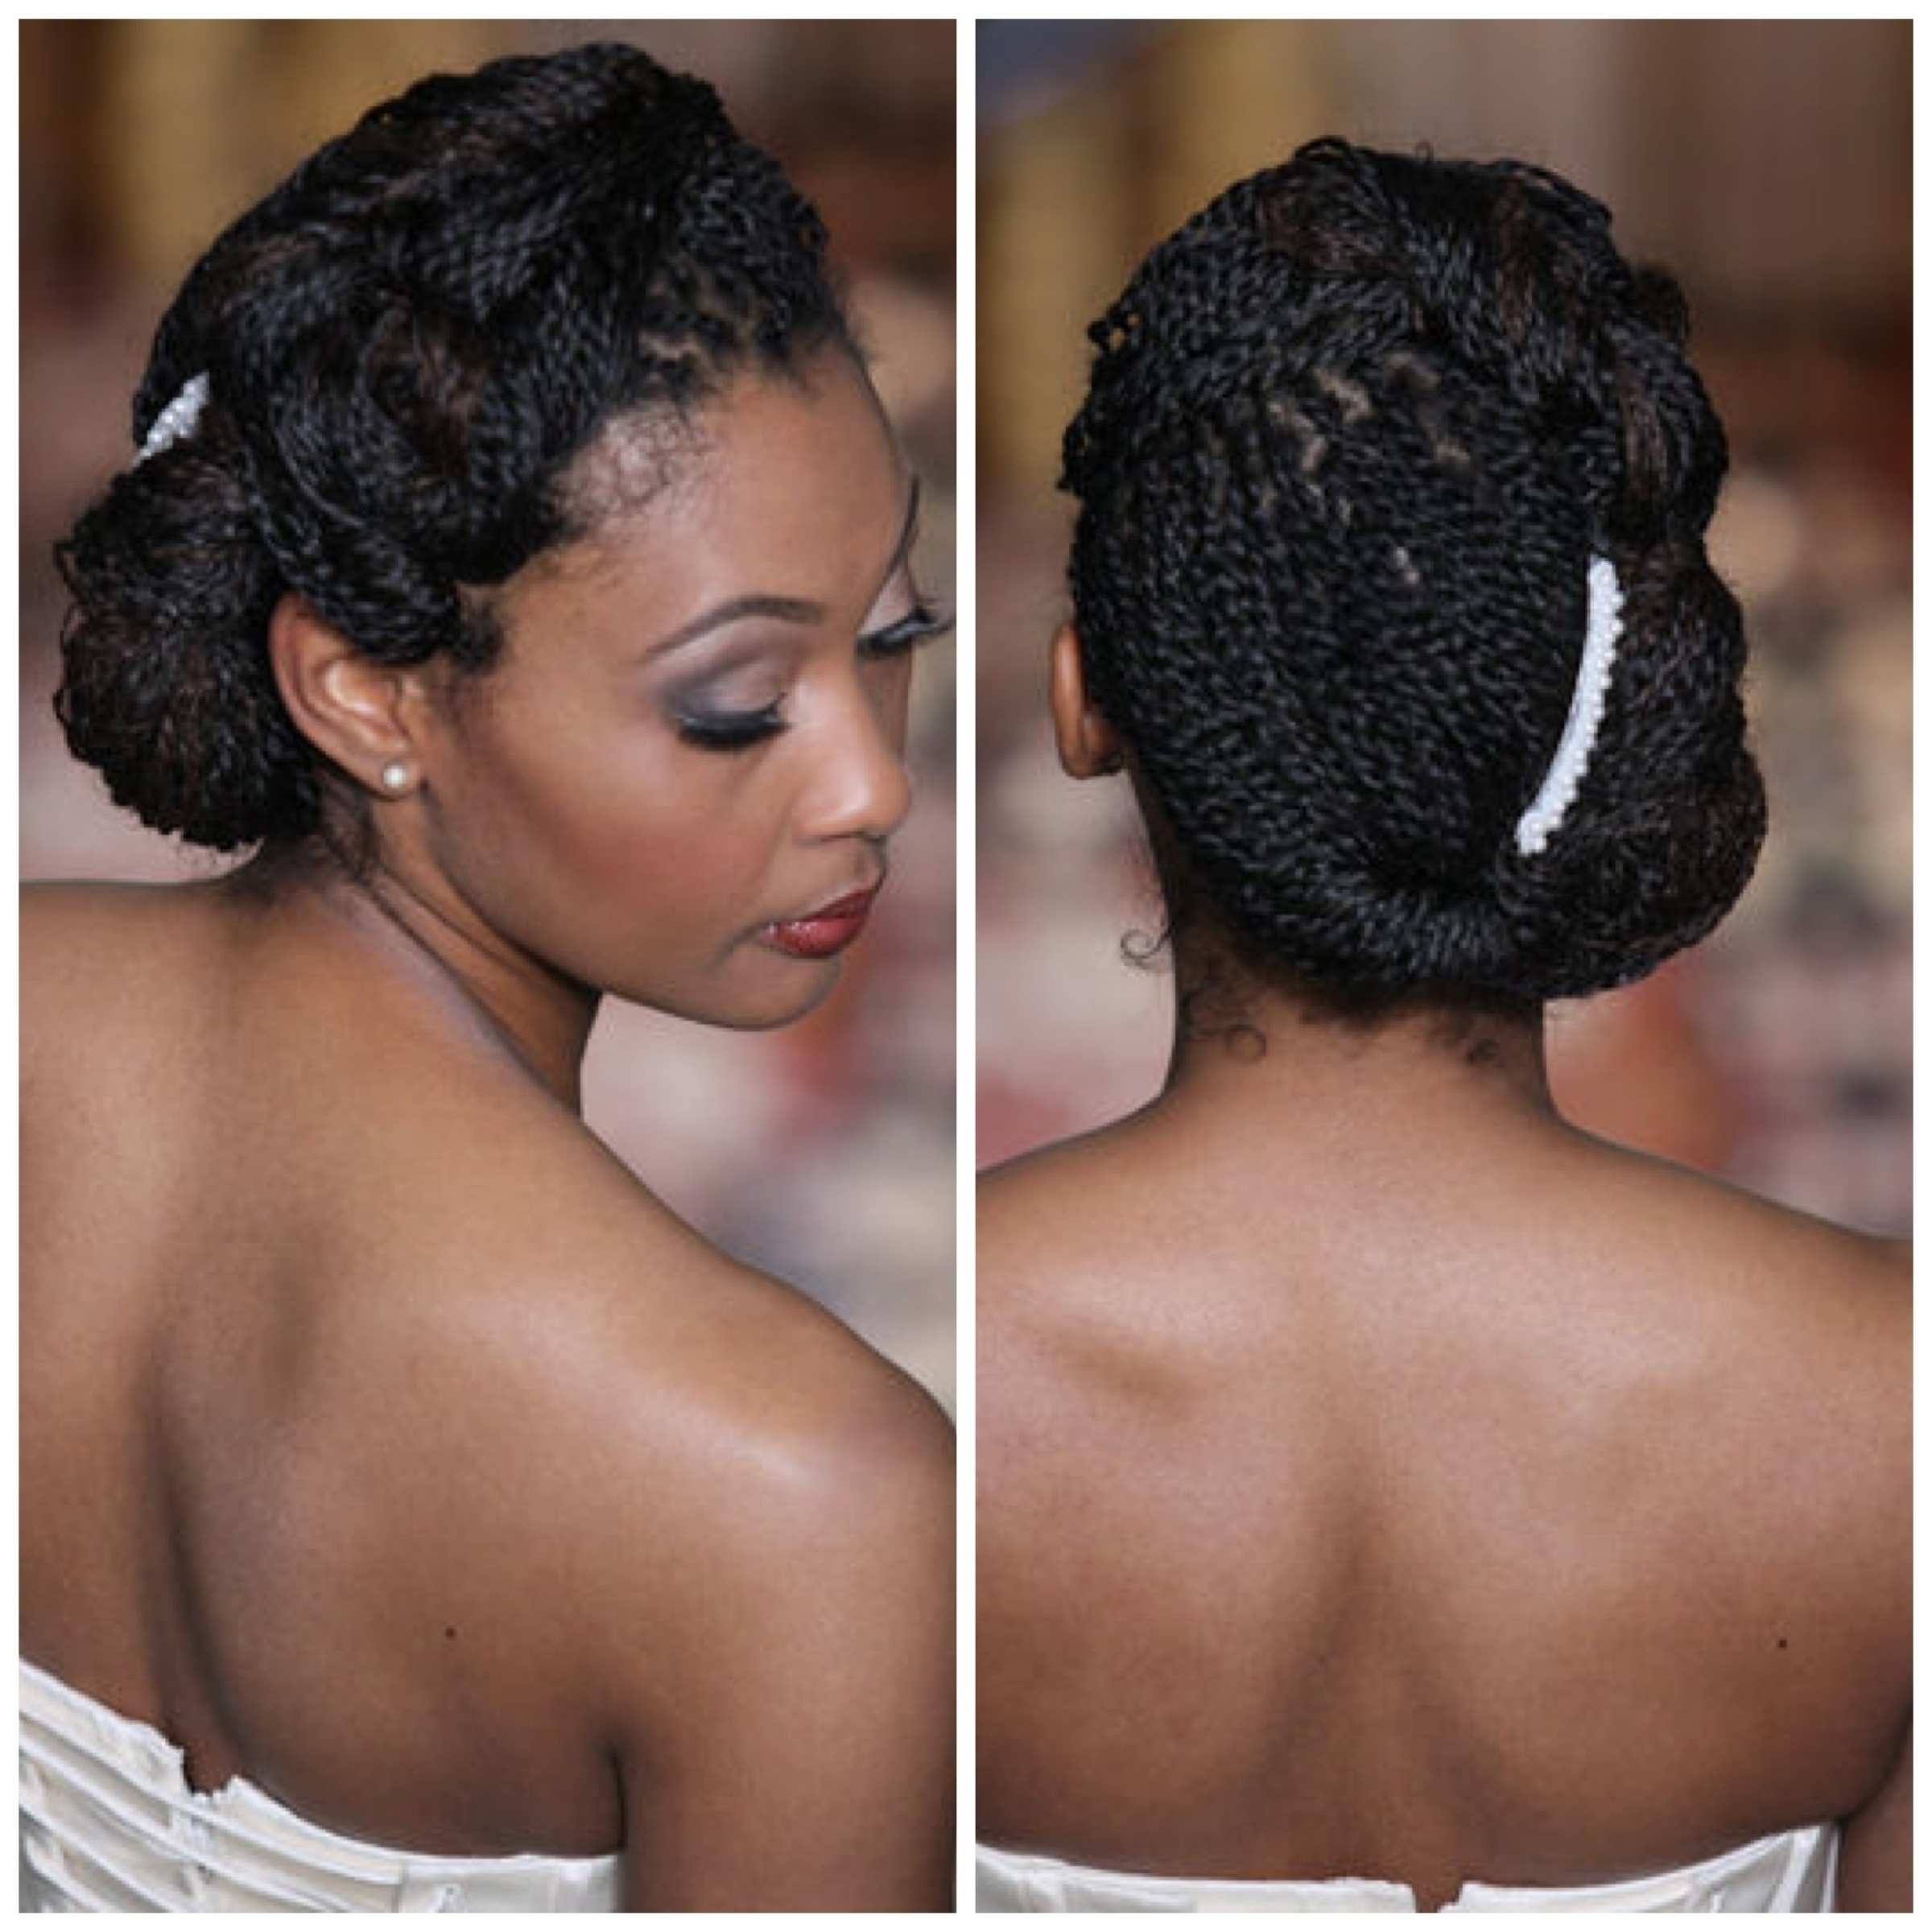 Pleasing Black Braids Updo Hairstyles Also Updo Black Braided Pertaining To Black Braids Updo Hairstyles (View 14 of 15)